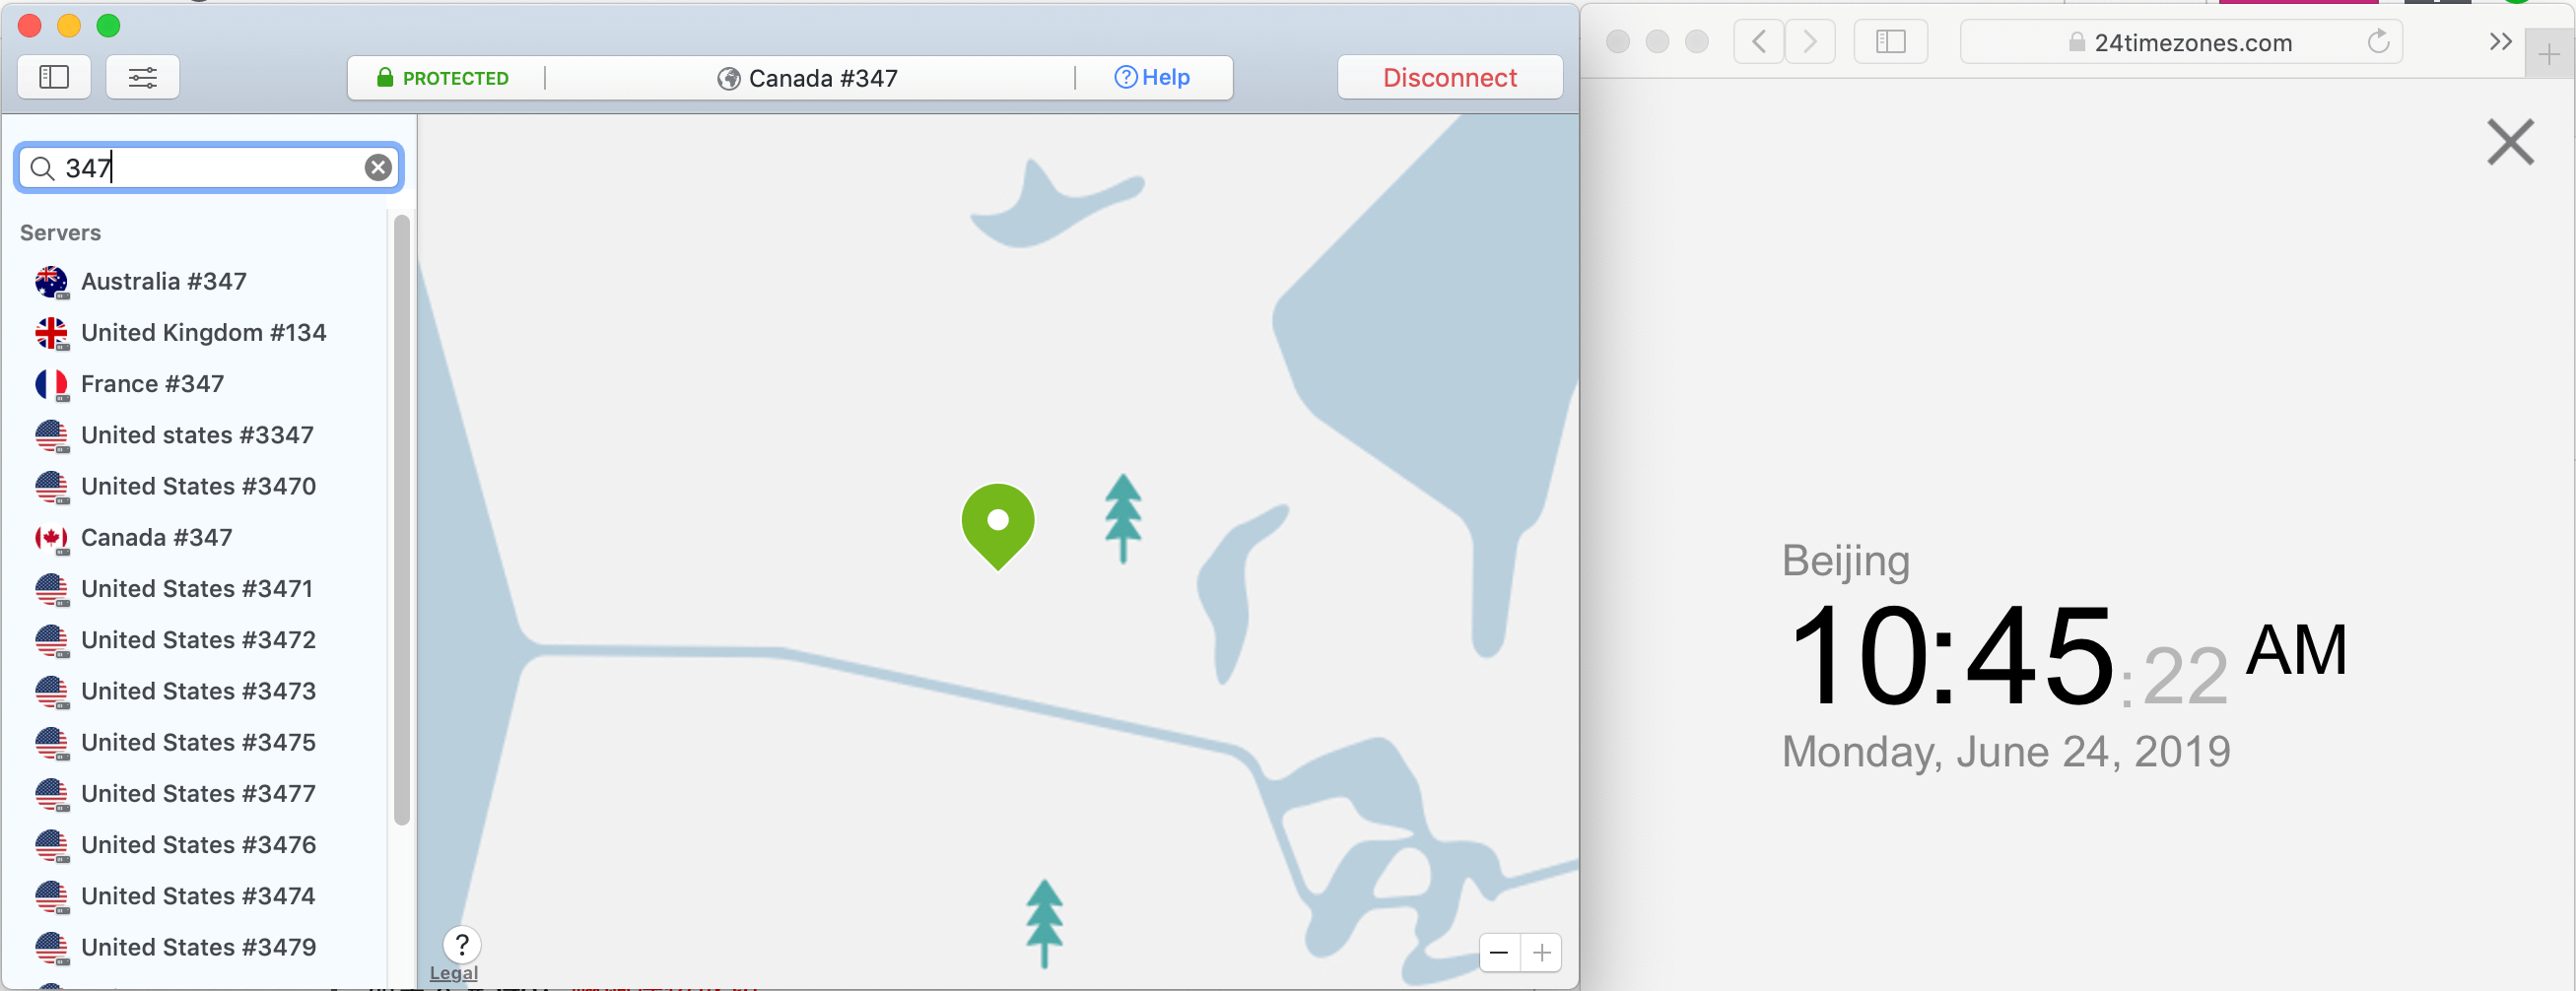 NordVPN macbook cabada 347节点 2019-06-24 上午10.45.23